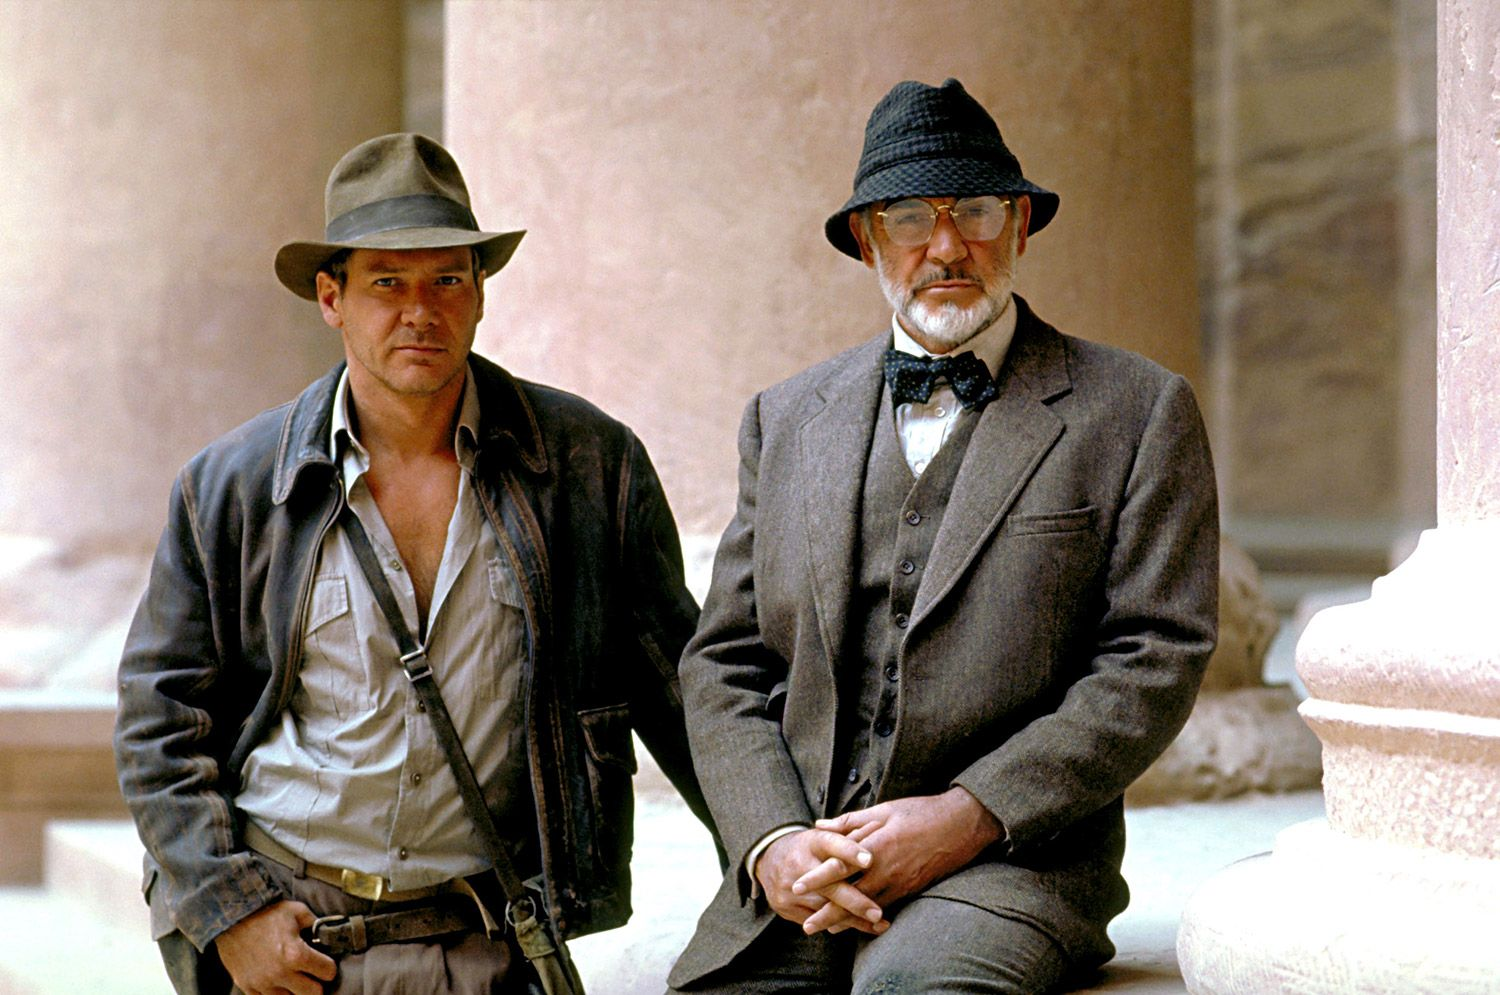 Harrison Ford Honors His Indiana Jones Father Sean Connery God We Had Fun Harrison Ford Indiana Jones Indiana Jones Harrison Ford